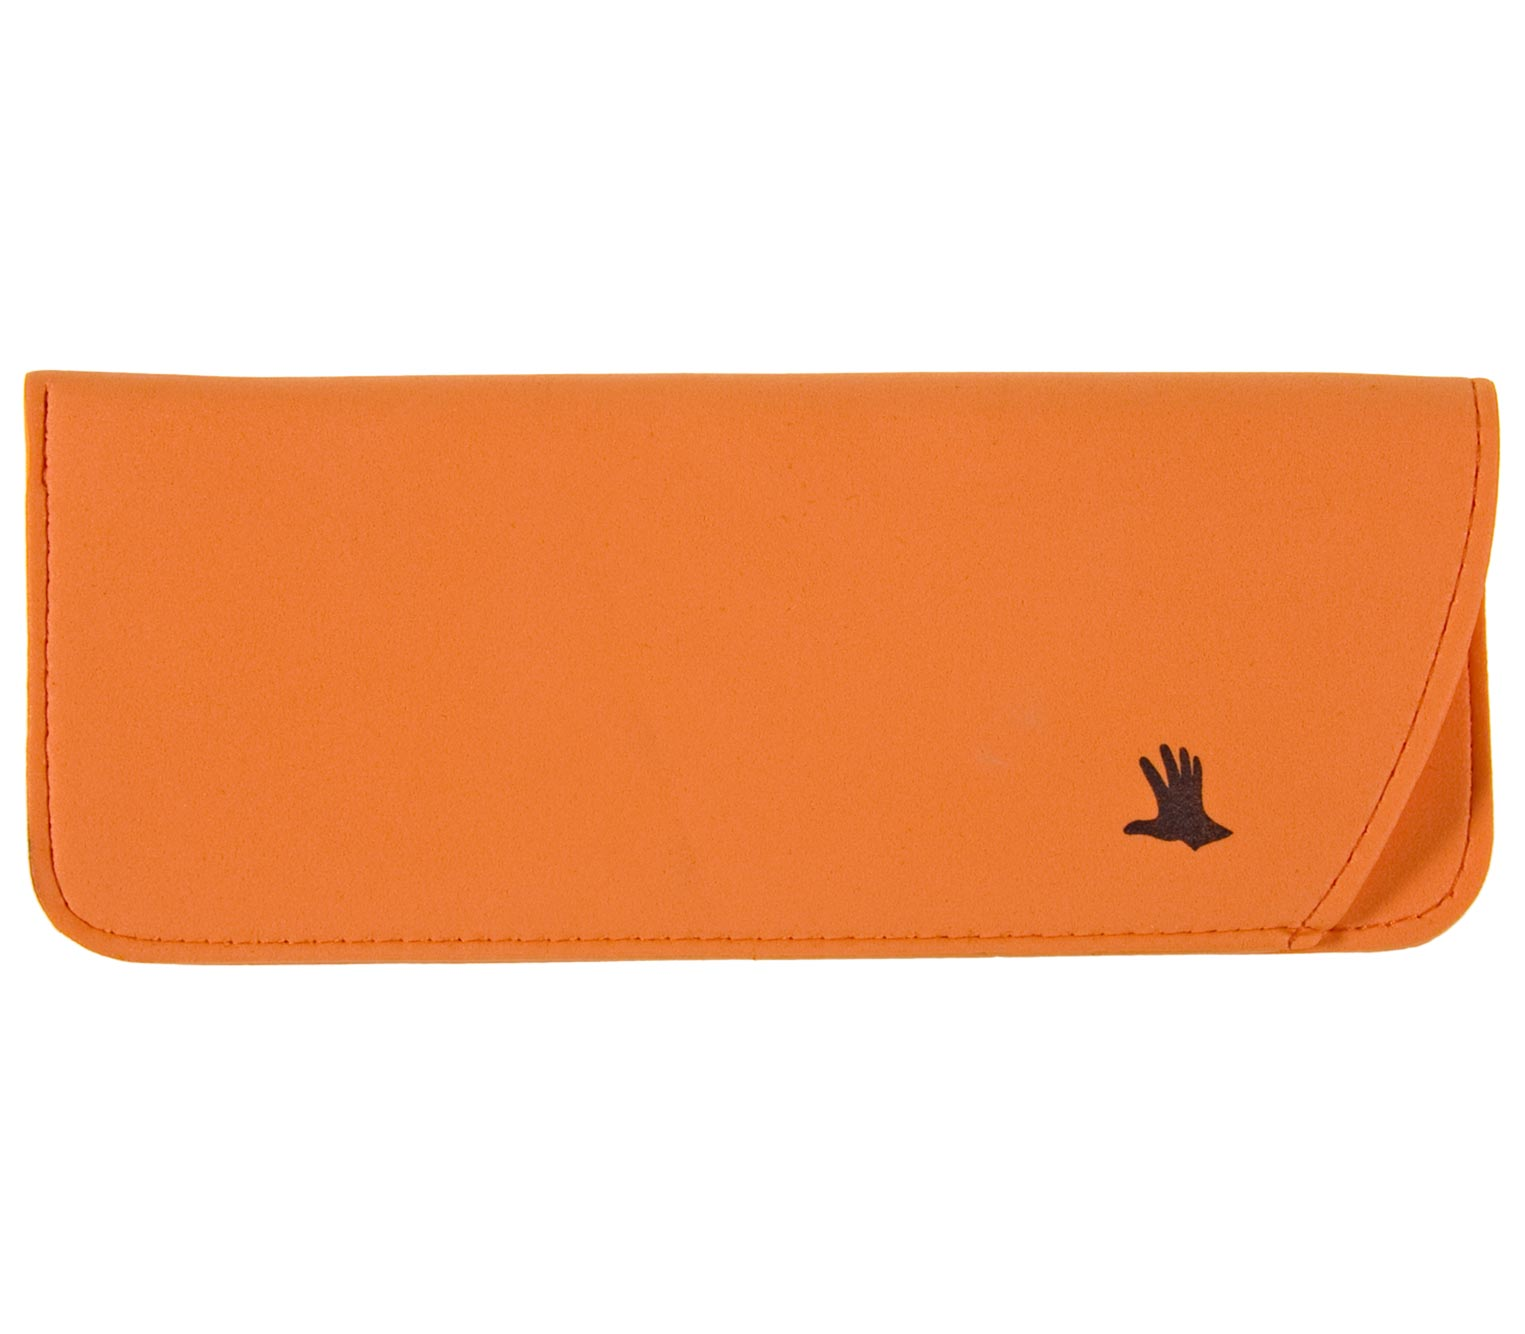 Main Image (Angle) - Moosy (Orange) Glasses Pouches Accessories